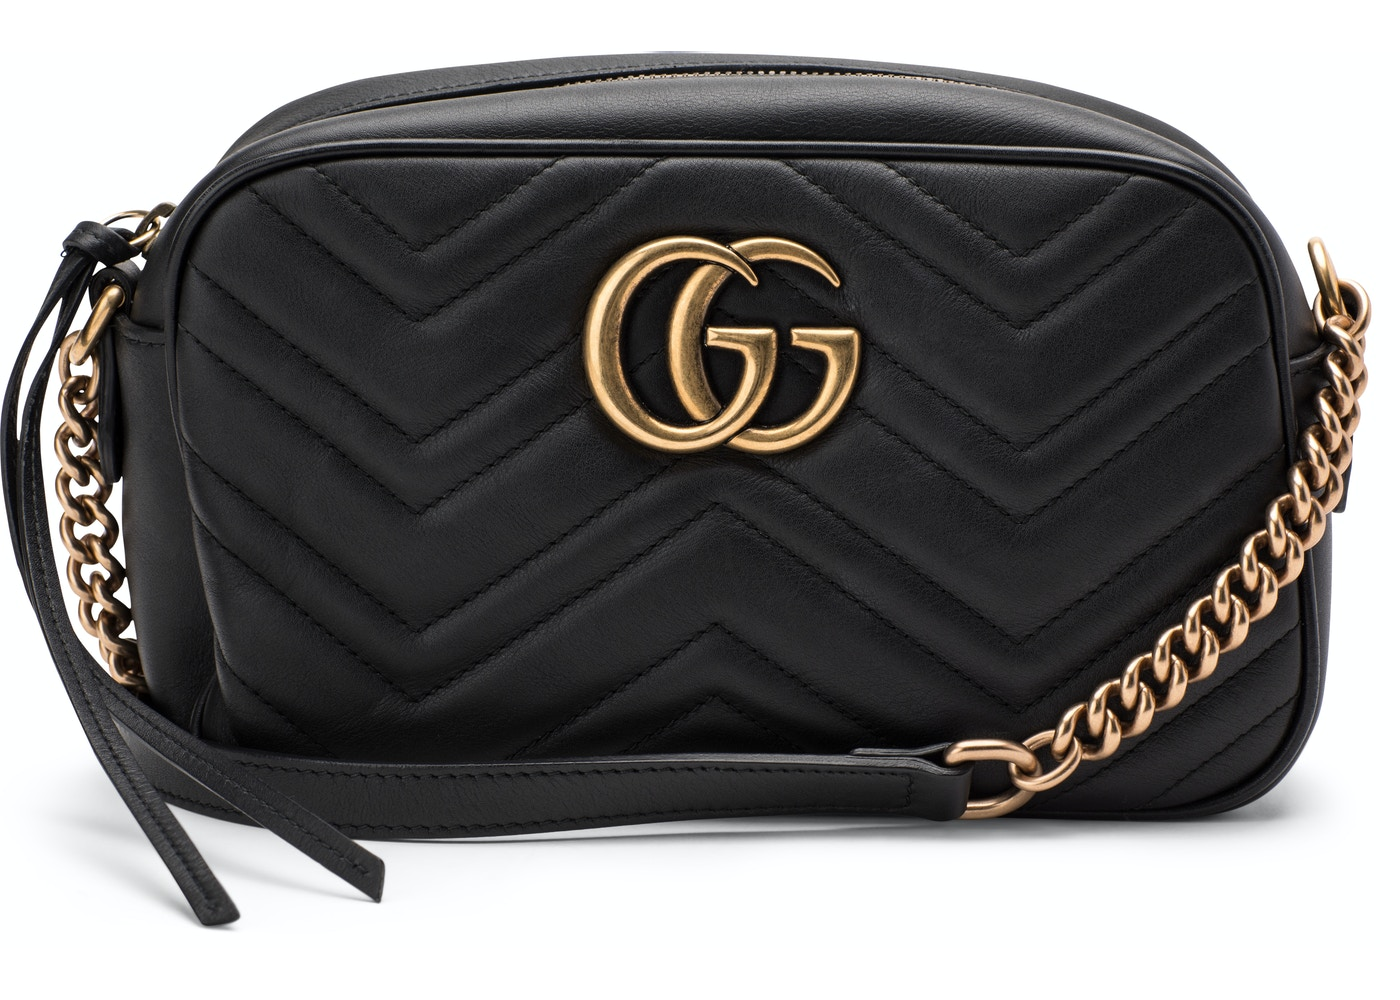 0523efbf56a3 Gucci GG Marmont Camera Bag Matelasse Small Black. Matelasse Small Black